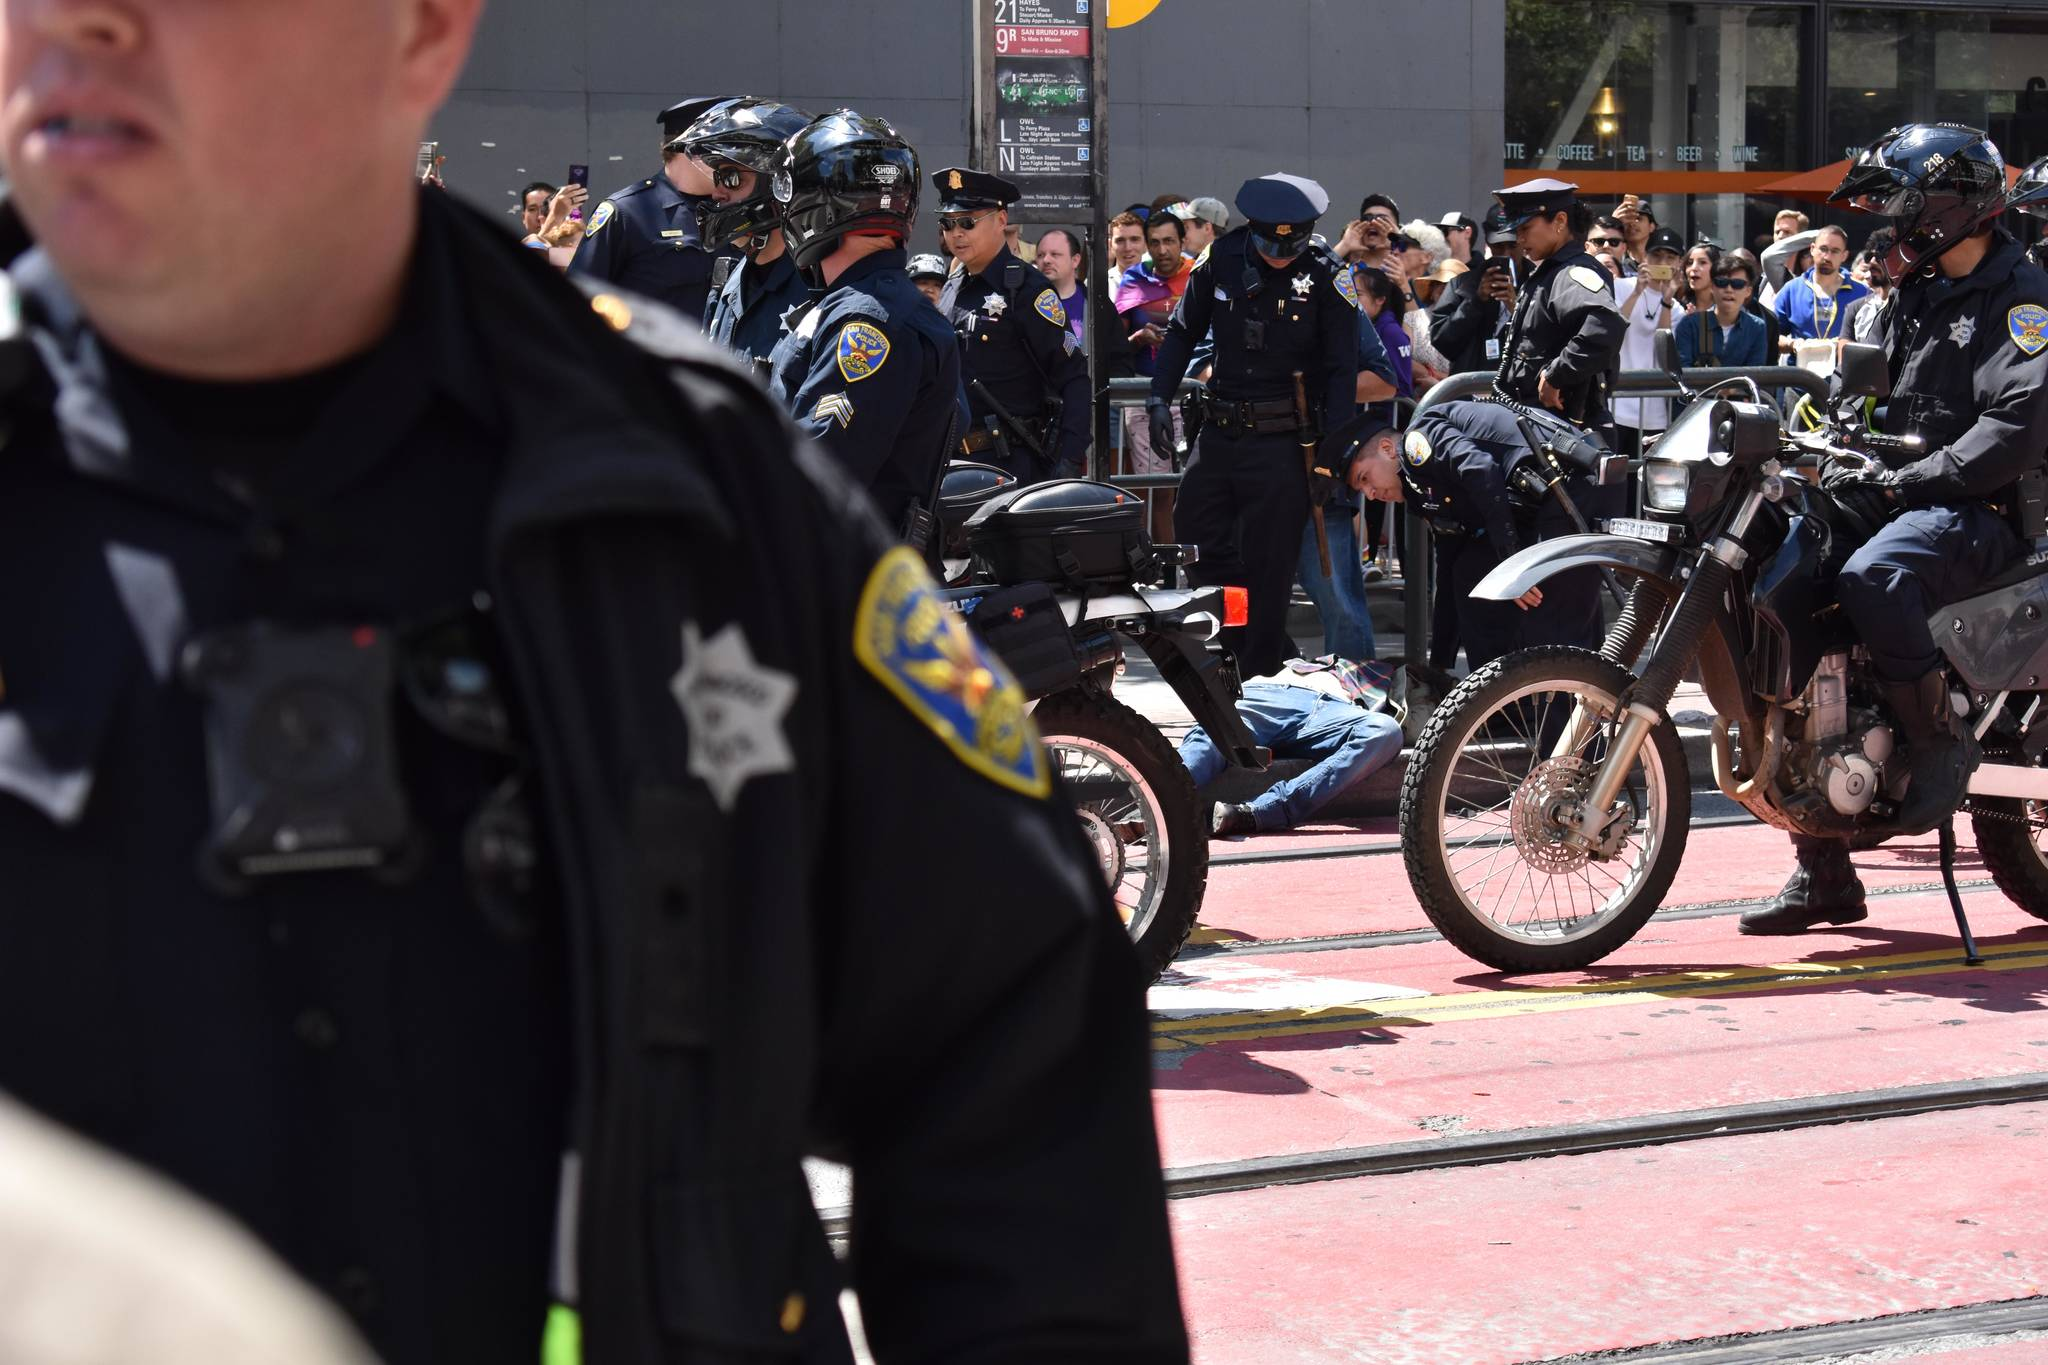 Police detain a protester and hold him on the pavement during a protest on Sunday, June 30, 2019. (Lola Chase/ Special to S.F. Examiner)